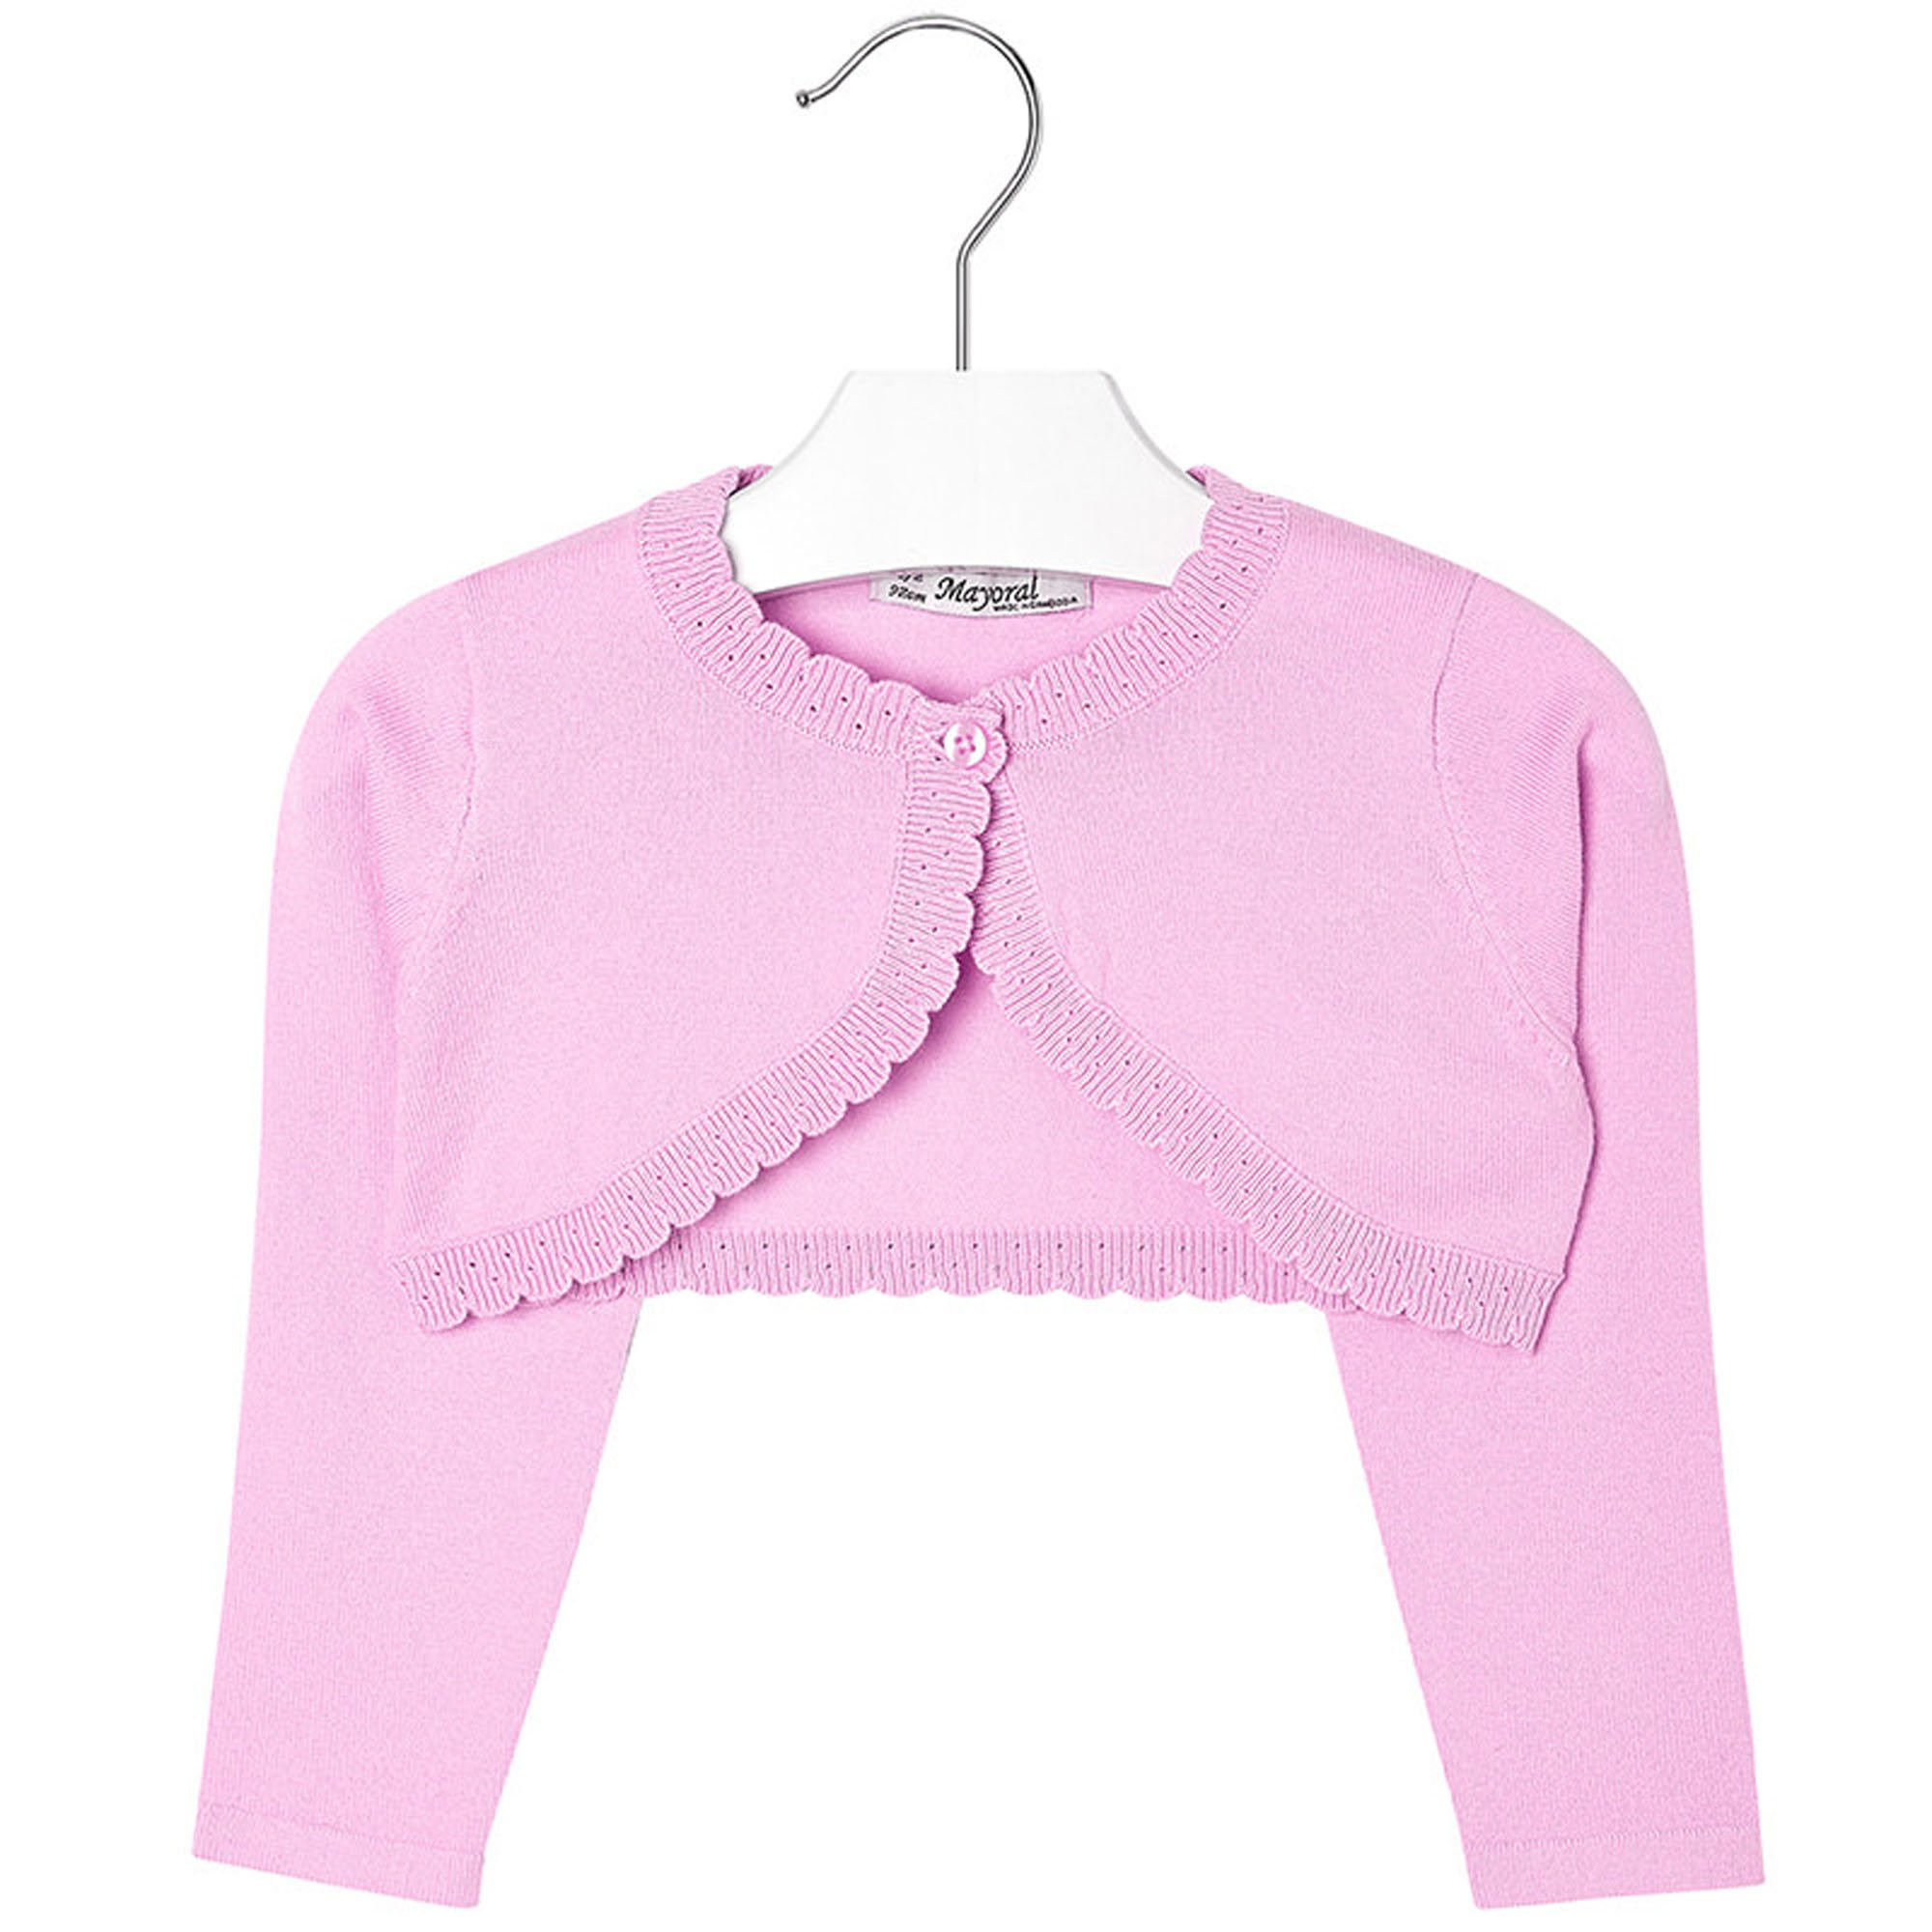 Mayoral Girls 2T-9 Orchid-Pink Scallop Edge Knit Shrug Cardigan Sweater, Orchid,2